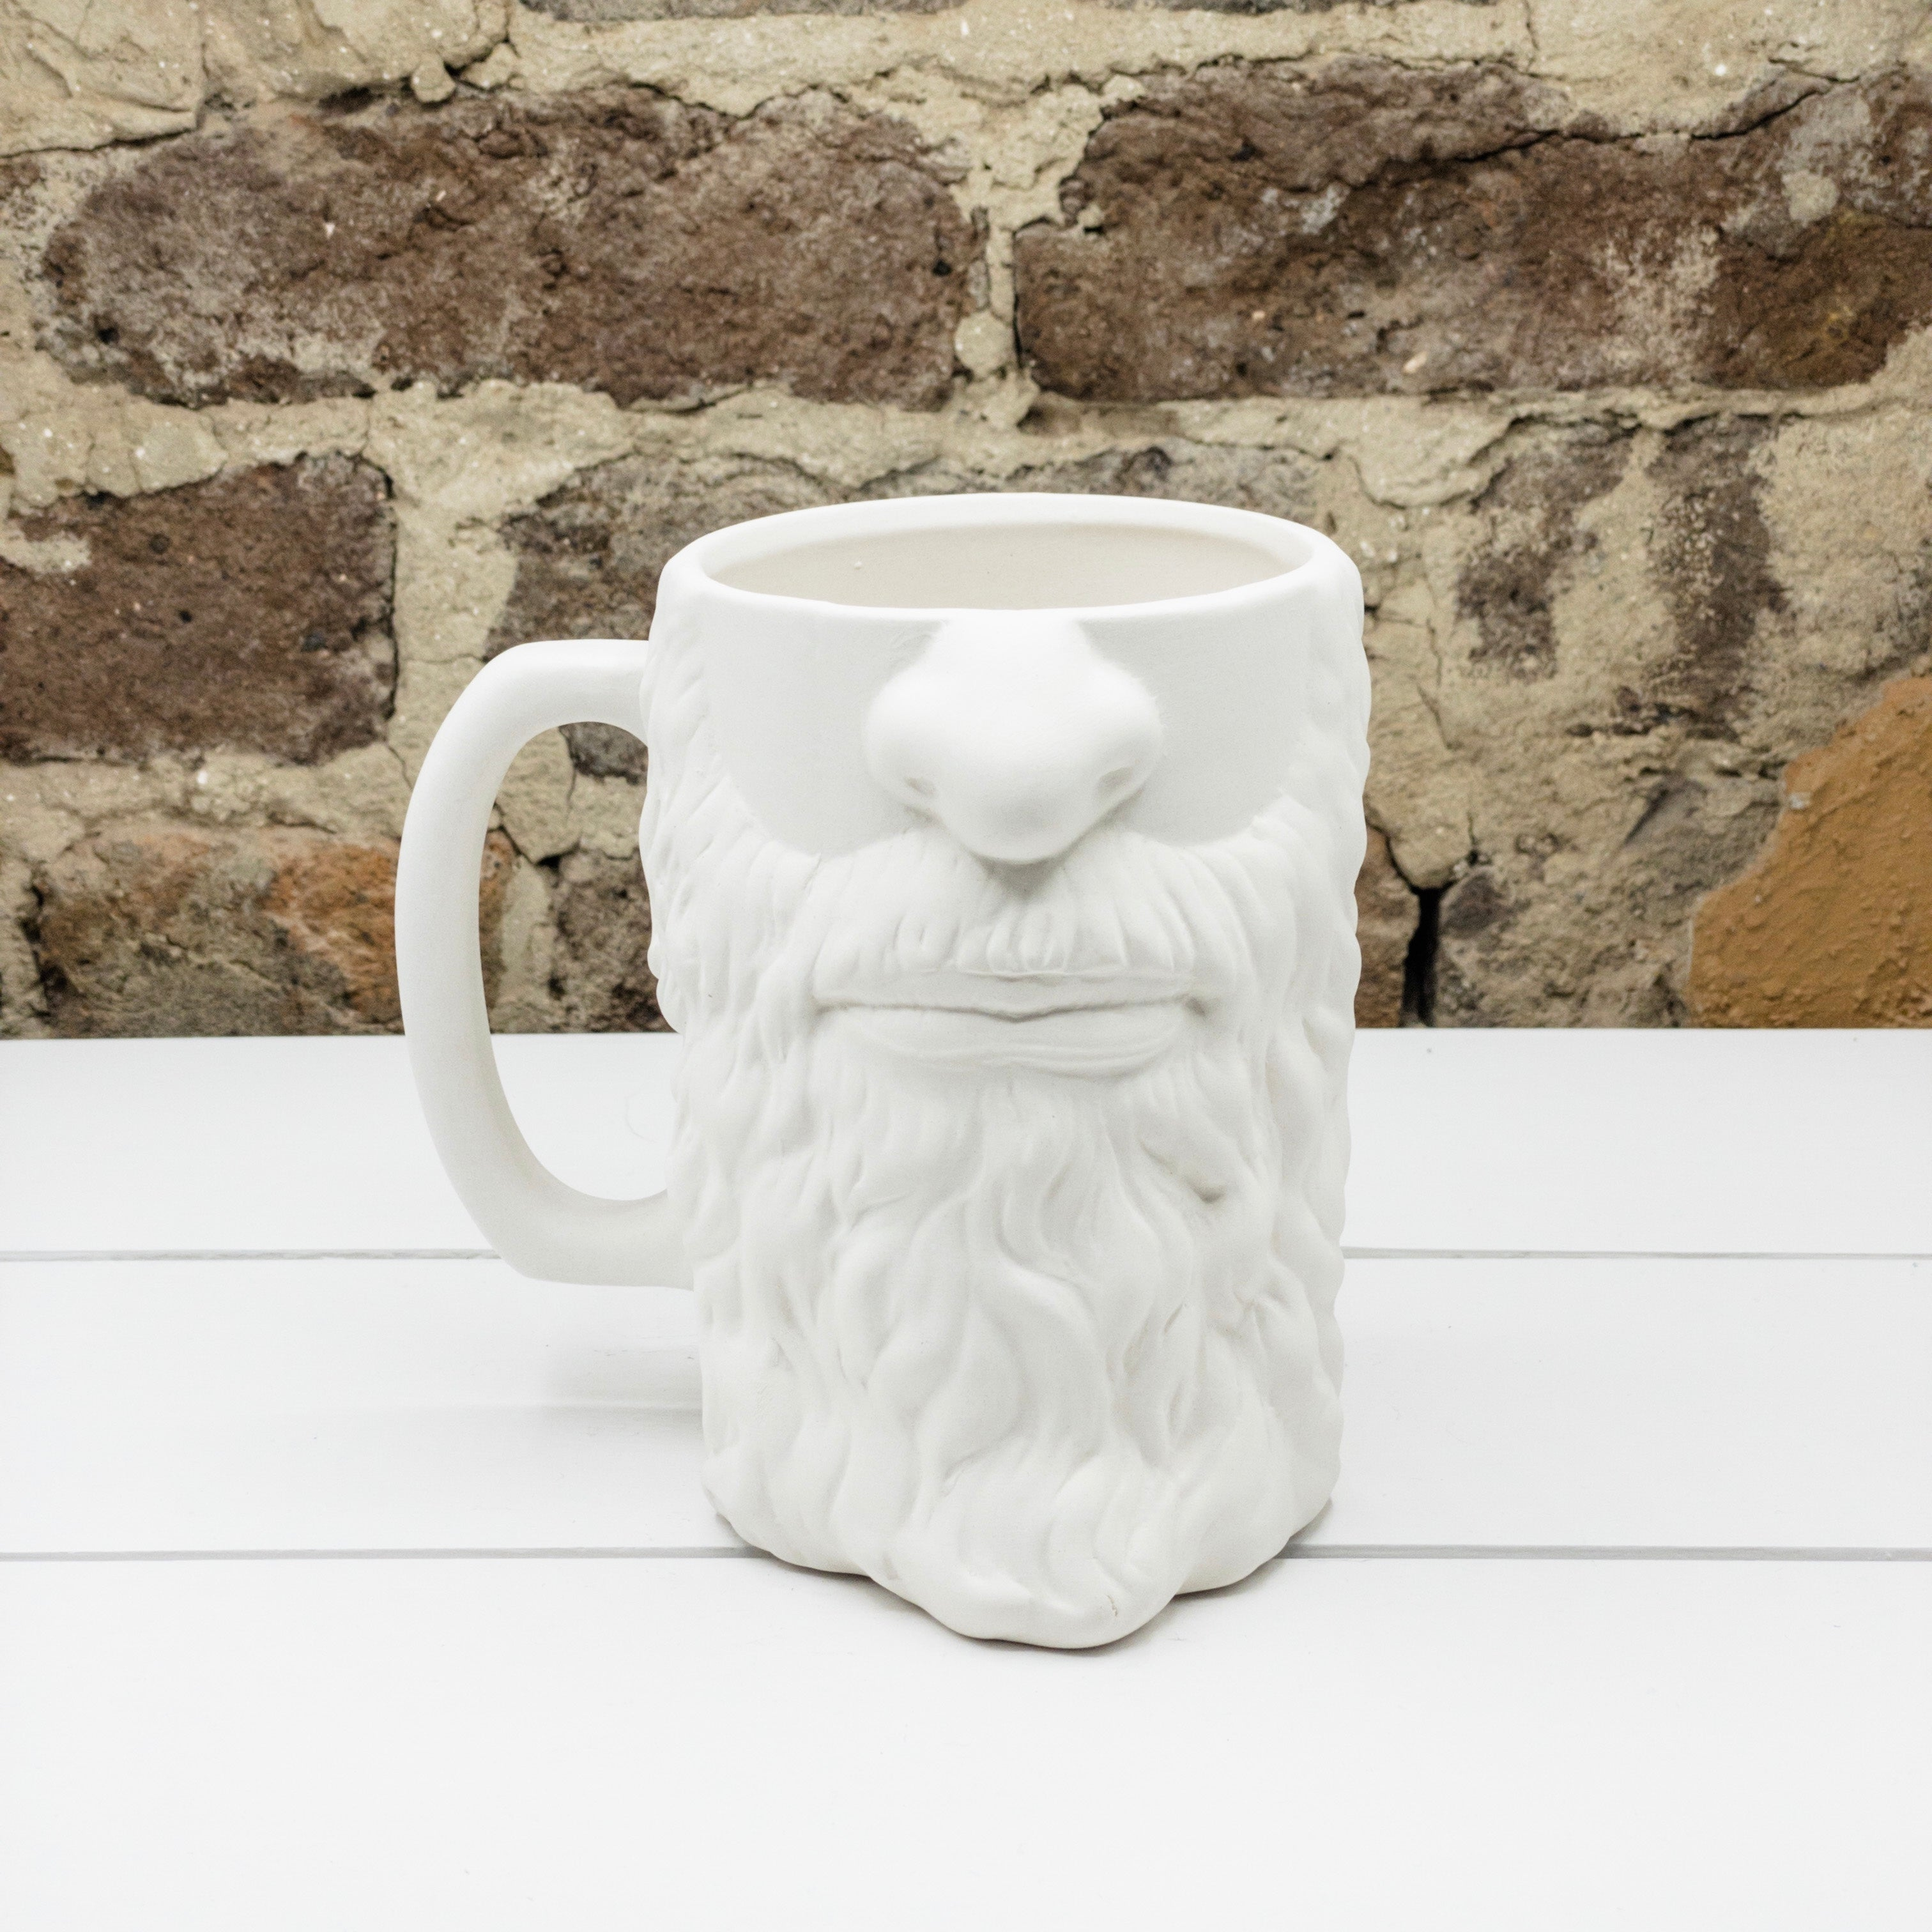 Bearded Beer Stein Mug